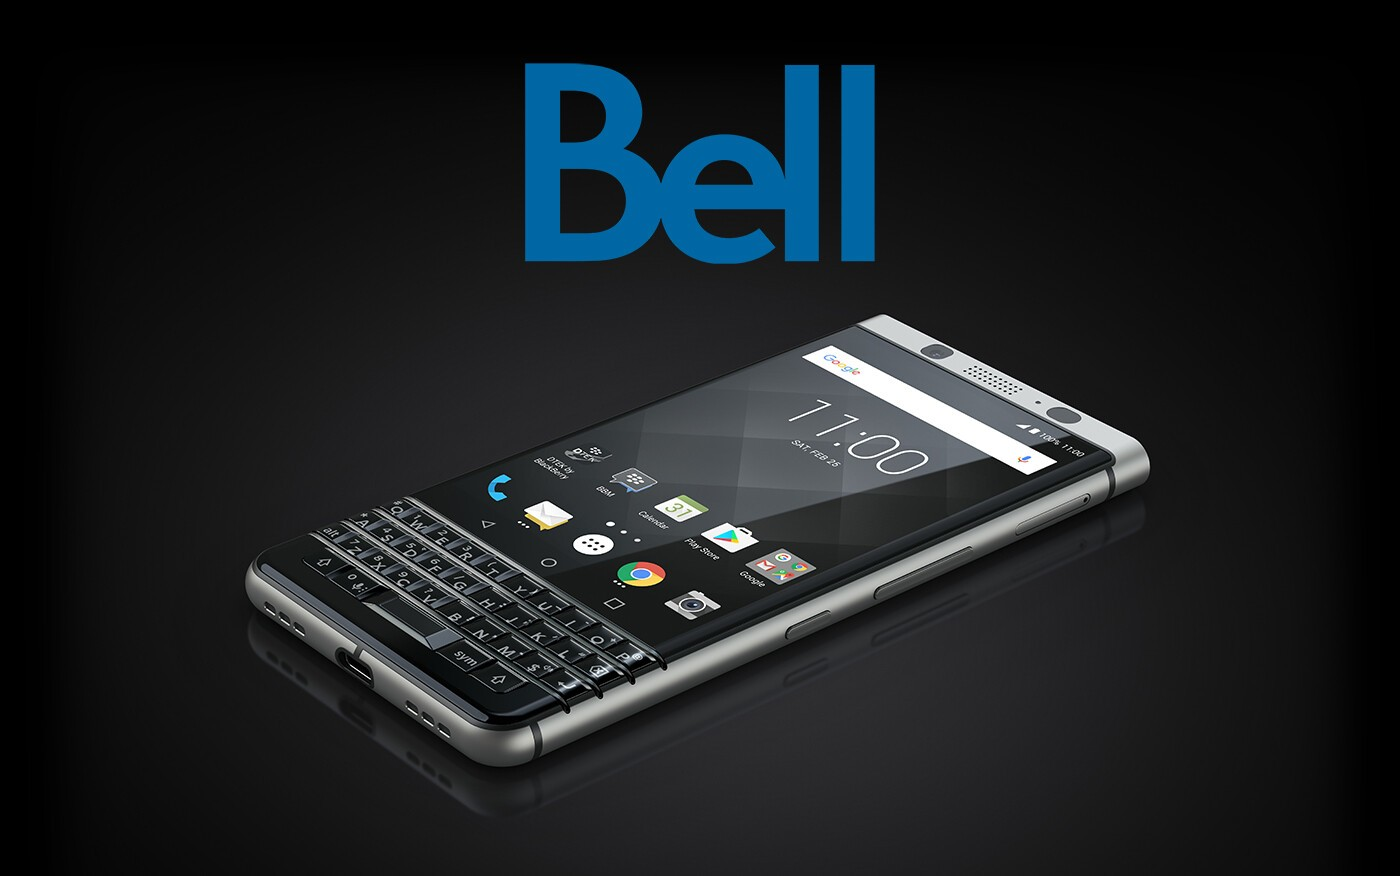 The BlackBerry KEYone will be available from Bell starting in late April